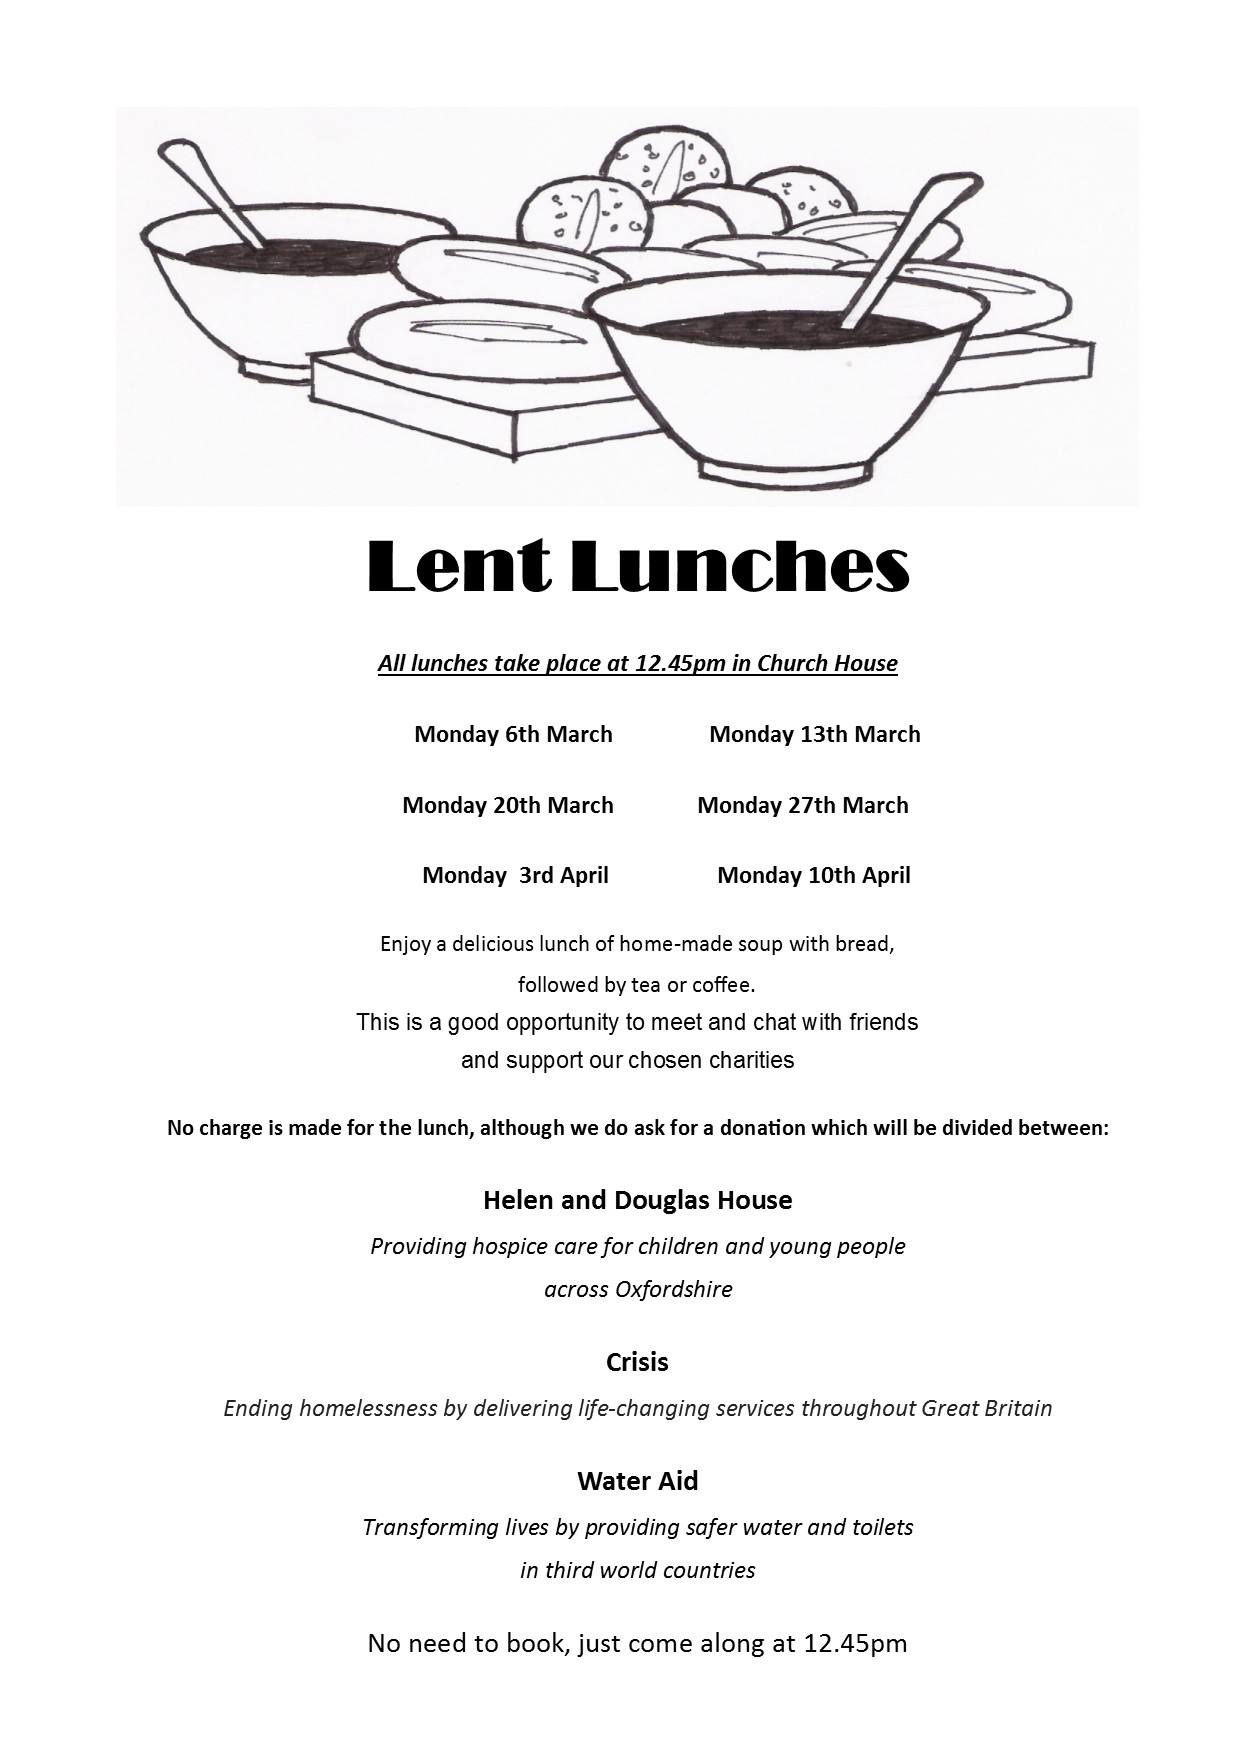 Lent lunches poster